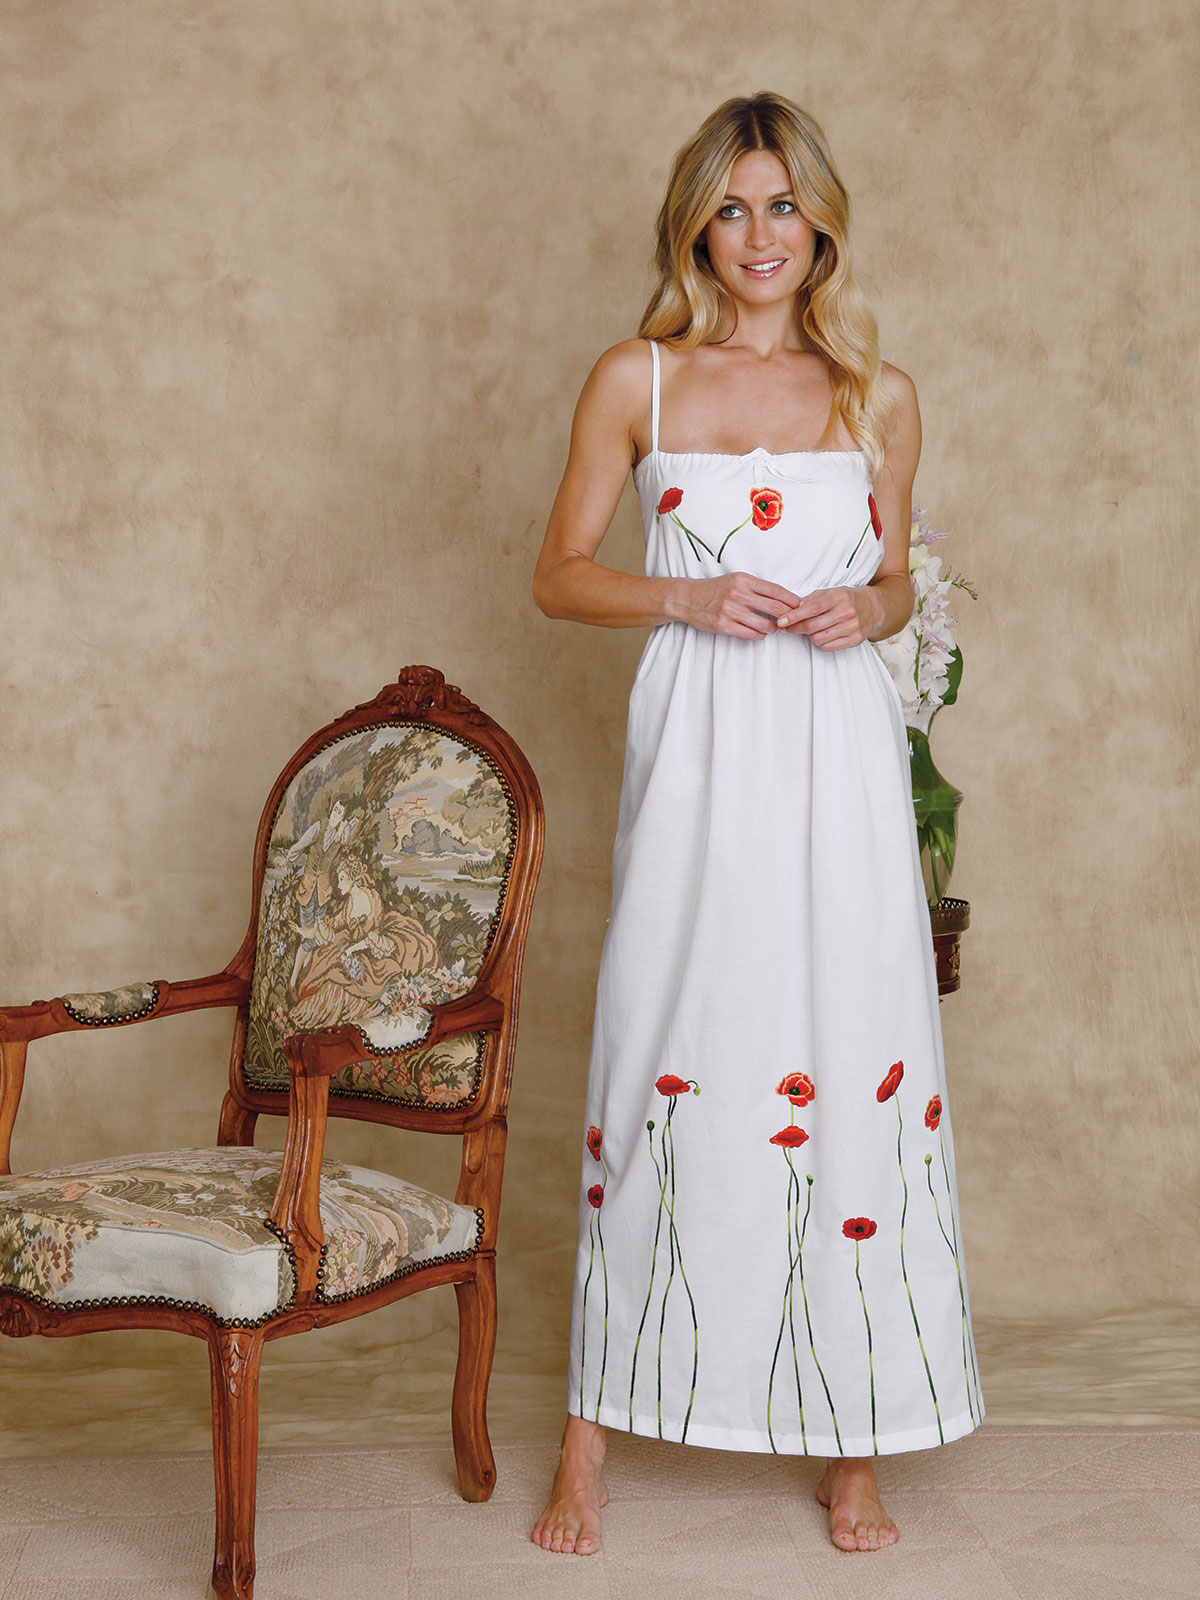 Poppies in Bloom: This enchanting gown is lovingly crafted of White 100% cotton batiste